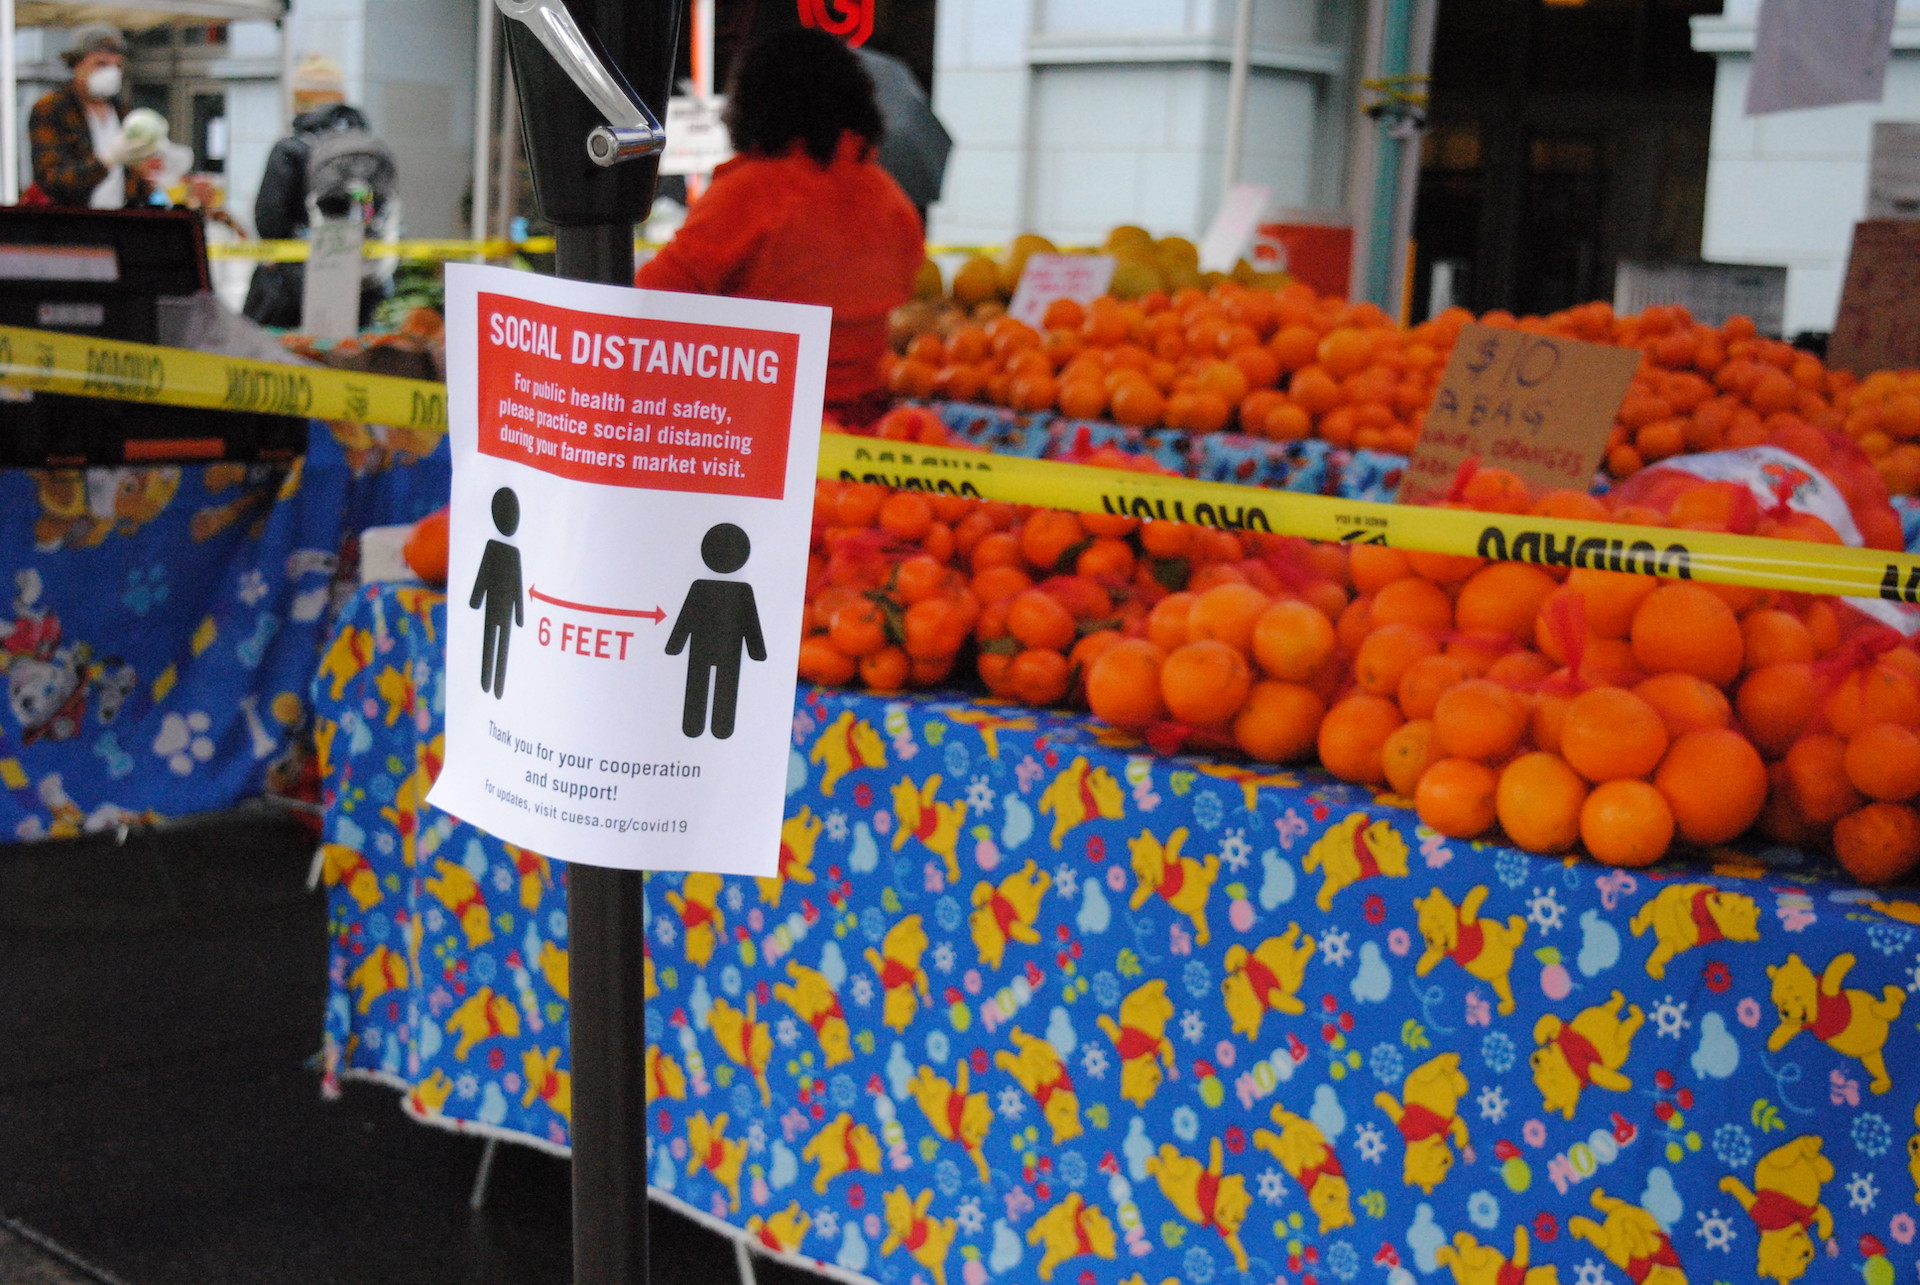 Social distancing guidelines and additional hand washing stations are one of the ways farmers markets like CUESA have adapted to the coronavirus pandemic.